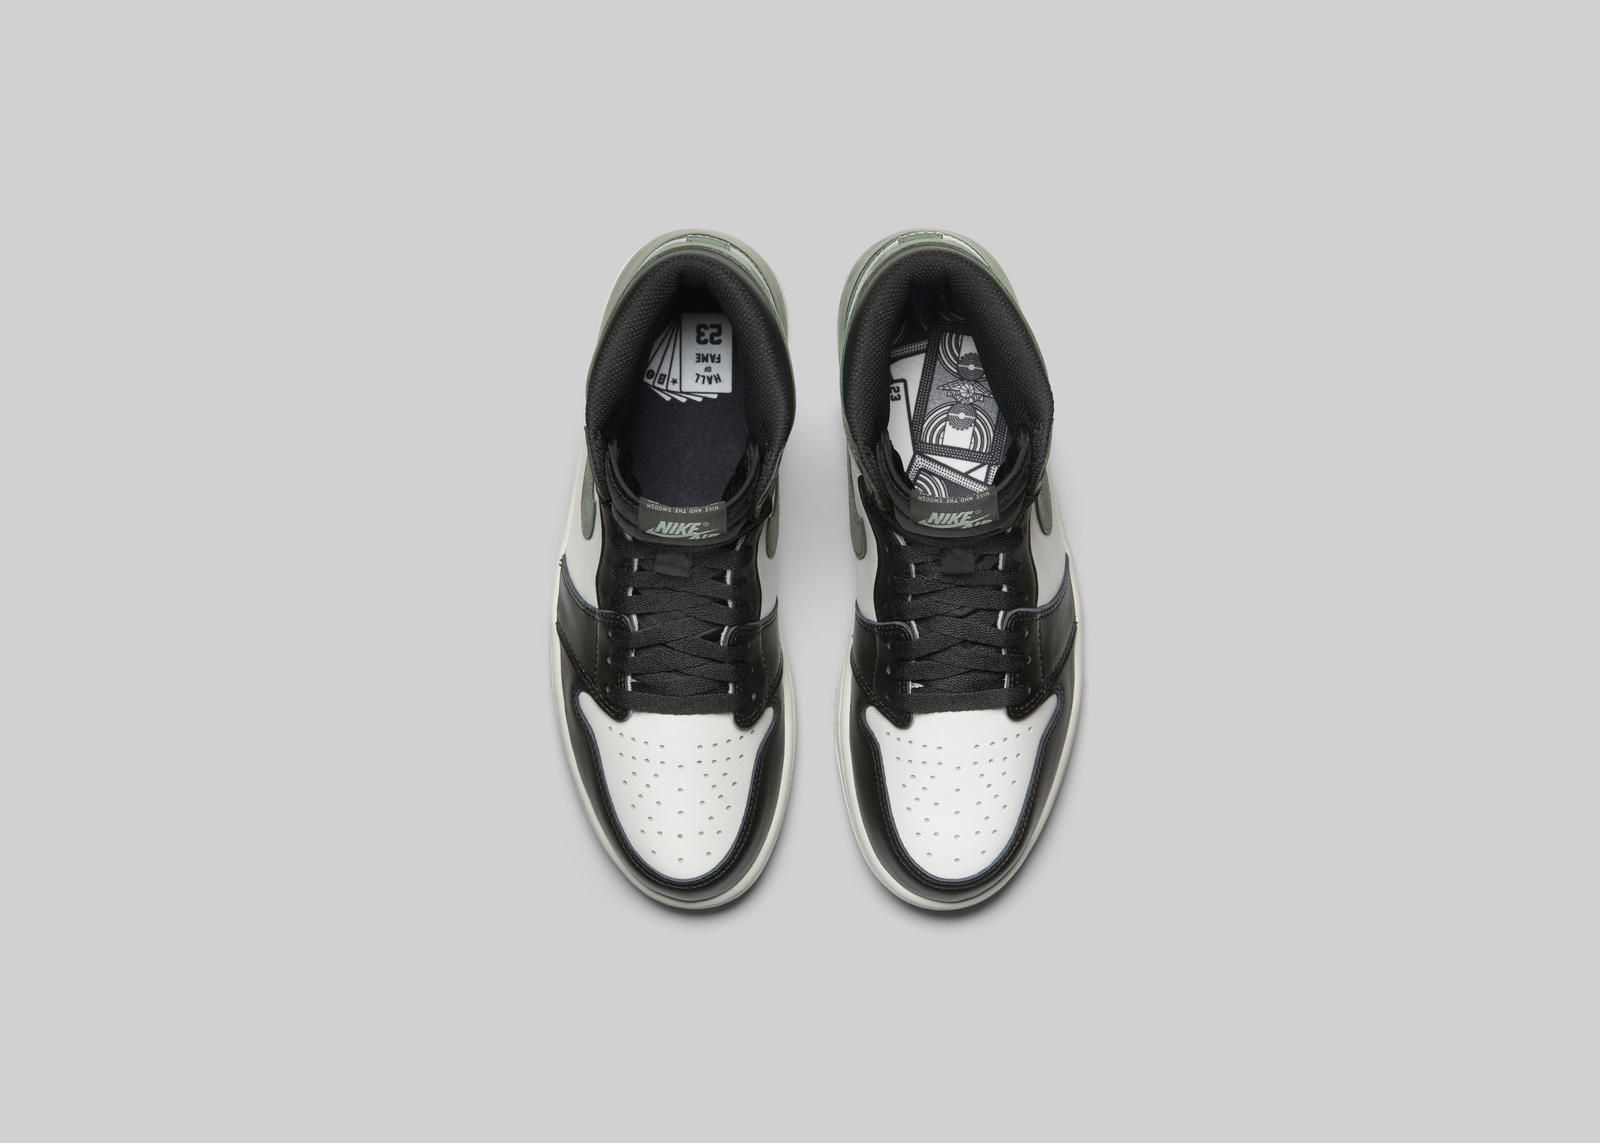 fea30312c85303 Air Jordan I Best Hand in the Game Collection - Nike News